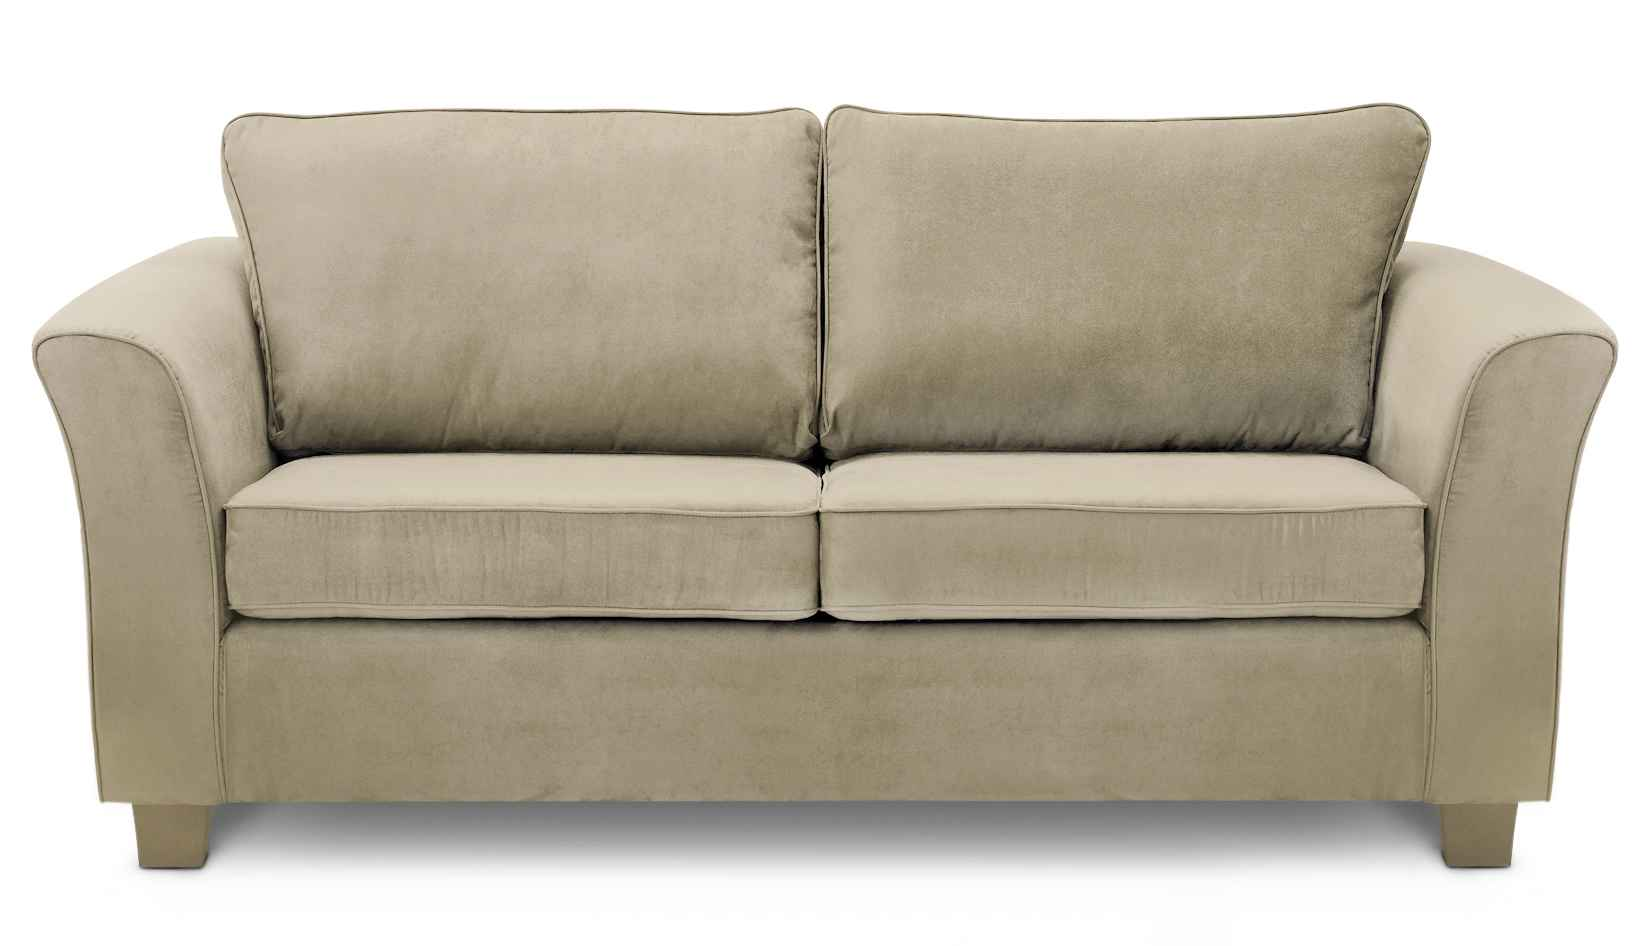 Cheap furniture feel the home for Cheap couches